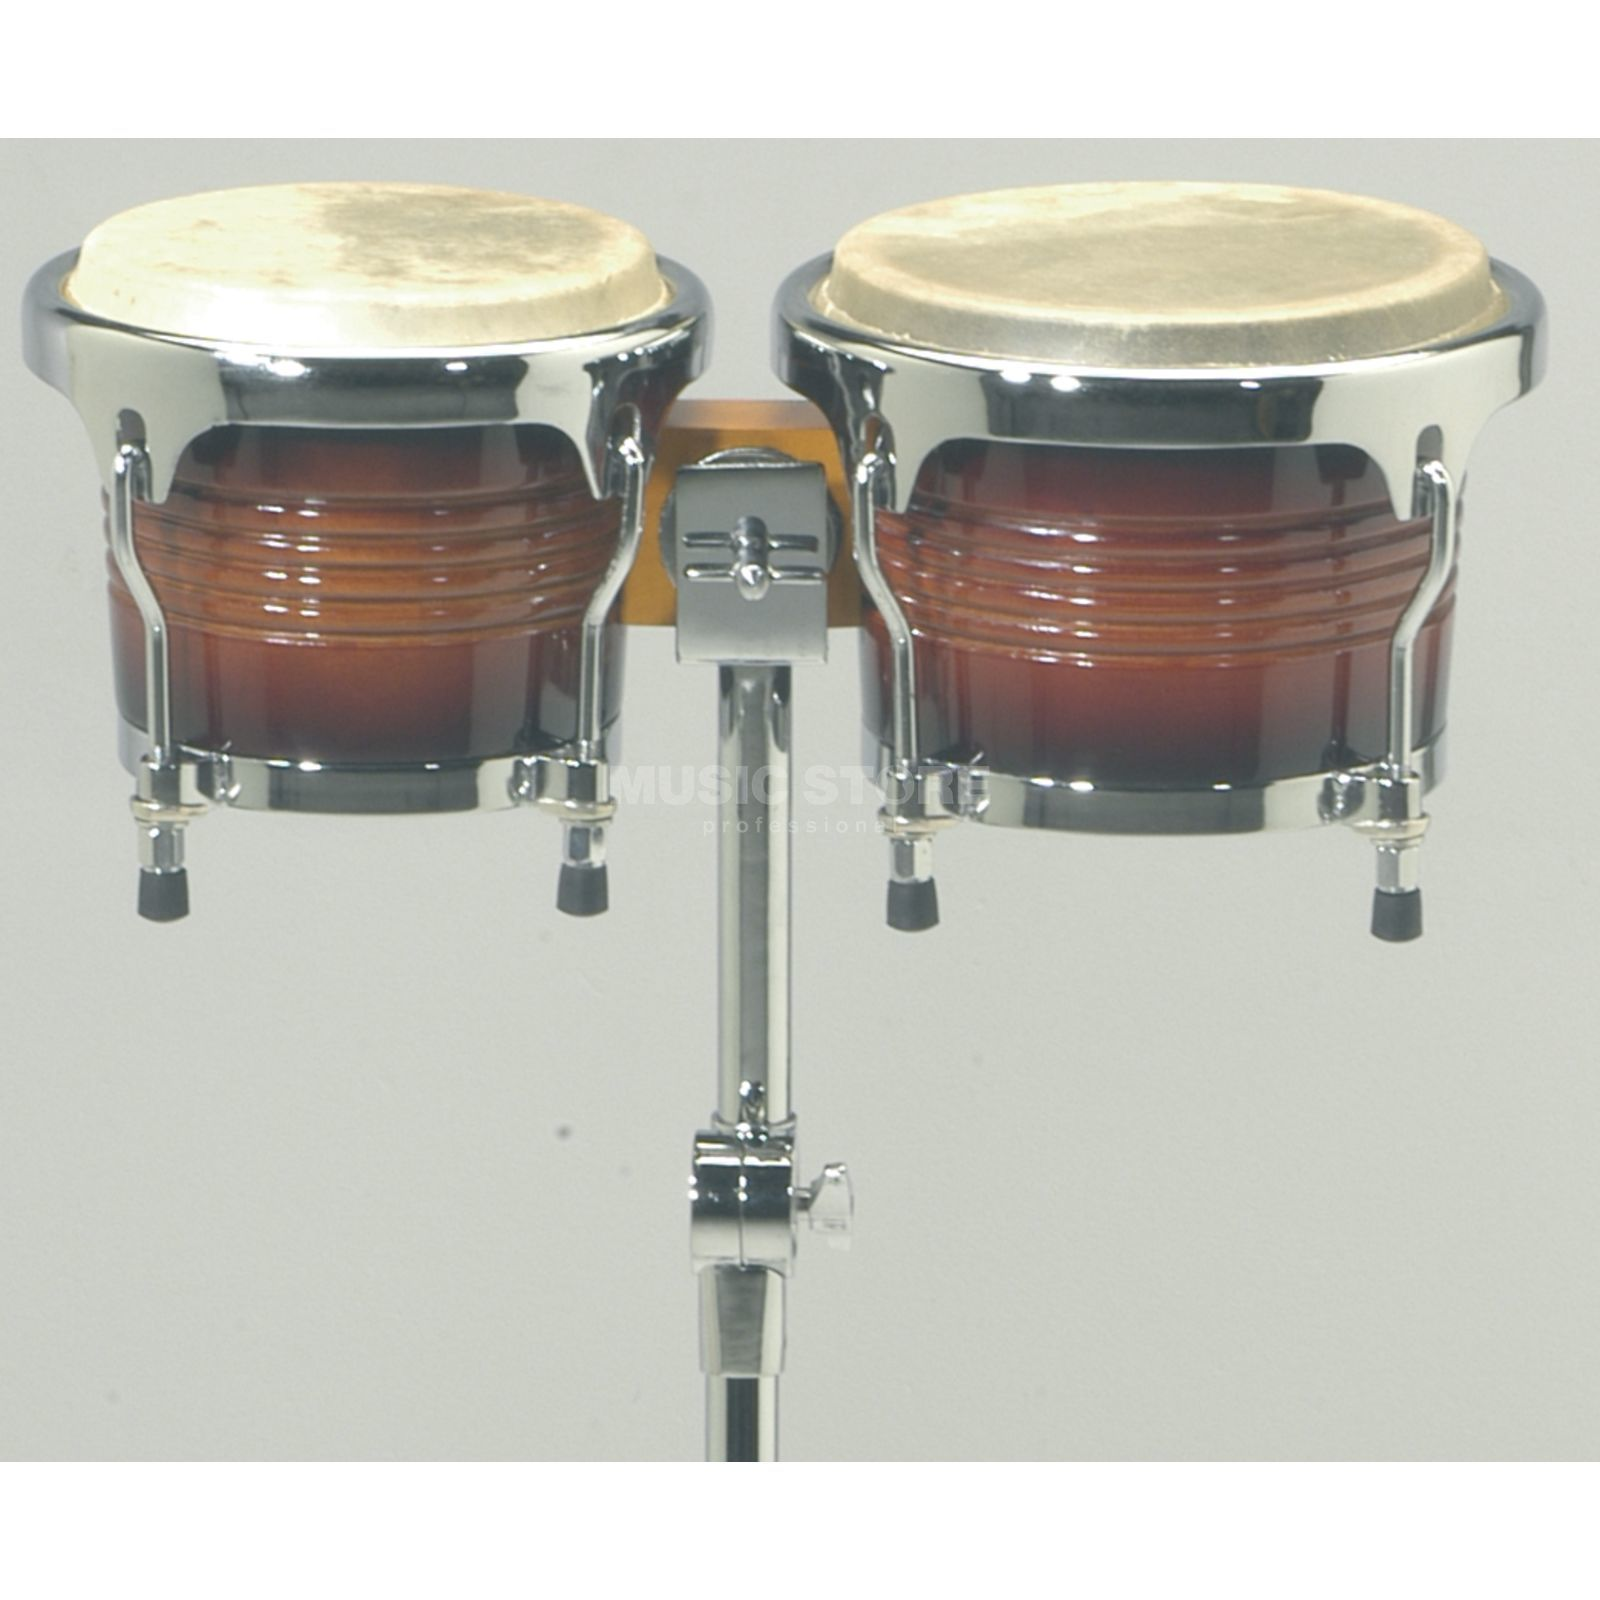 "Sonor Champion Bongos CB78SHG 7"" & 8"" Sunburst Изображение товара"